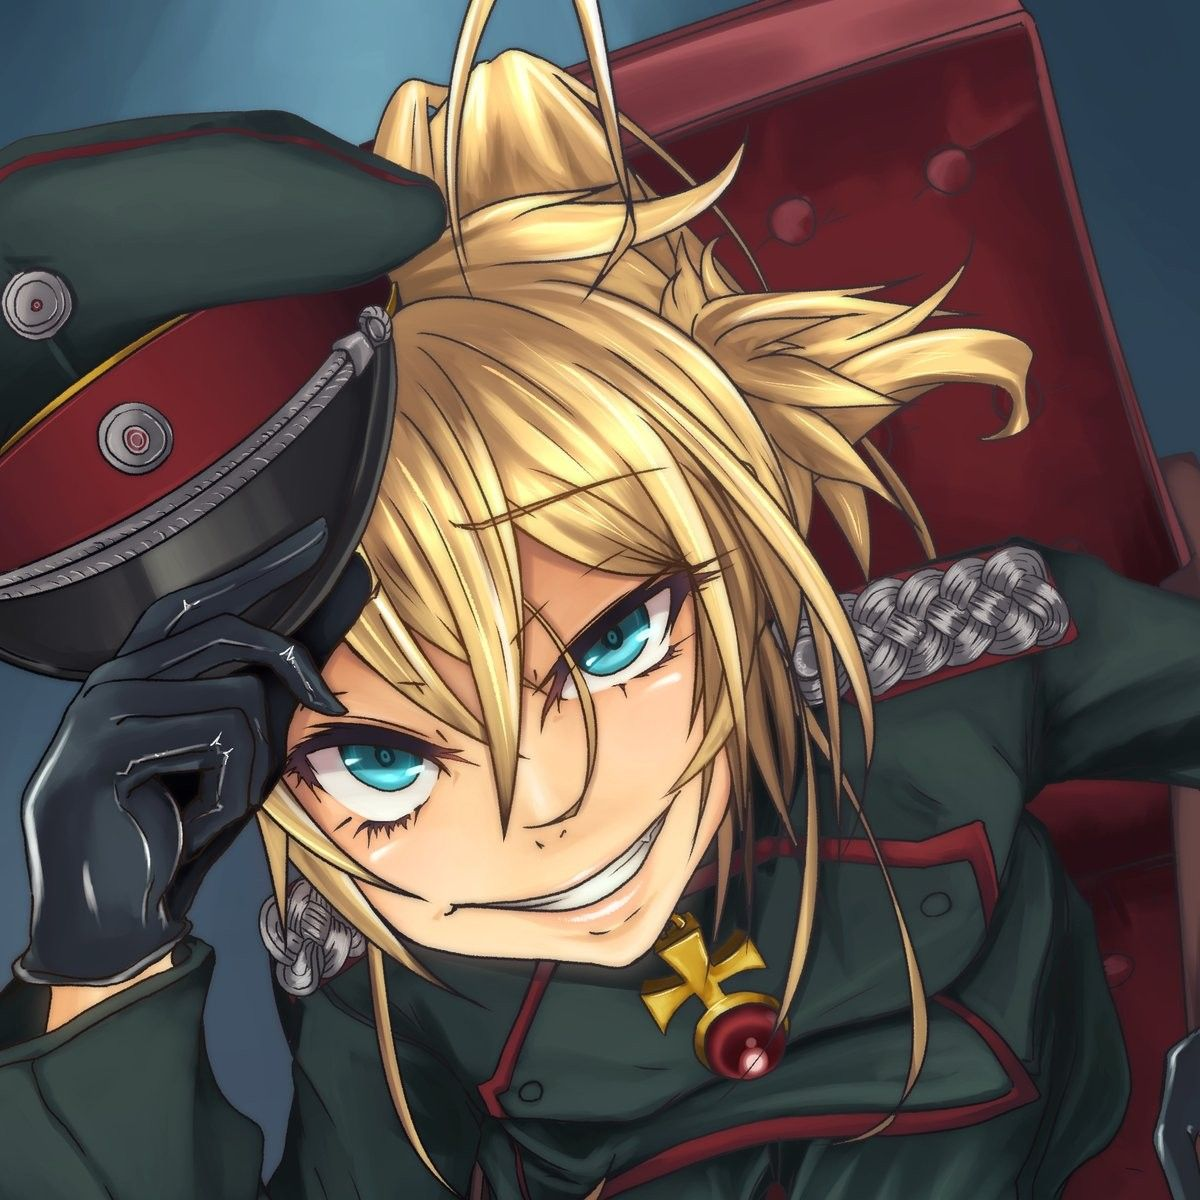 Pin by XxkookxX on Command (With images) Anime, Tanya